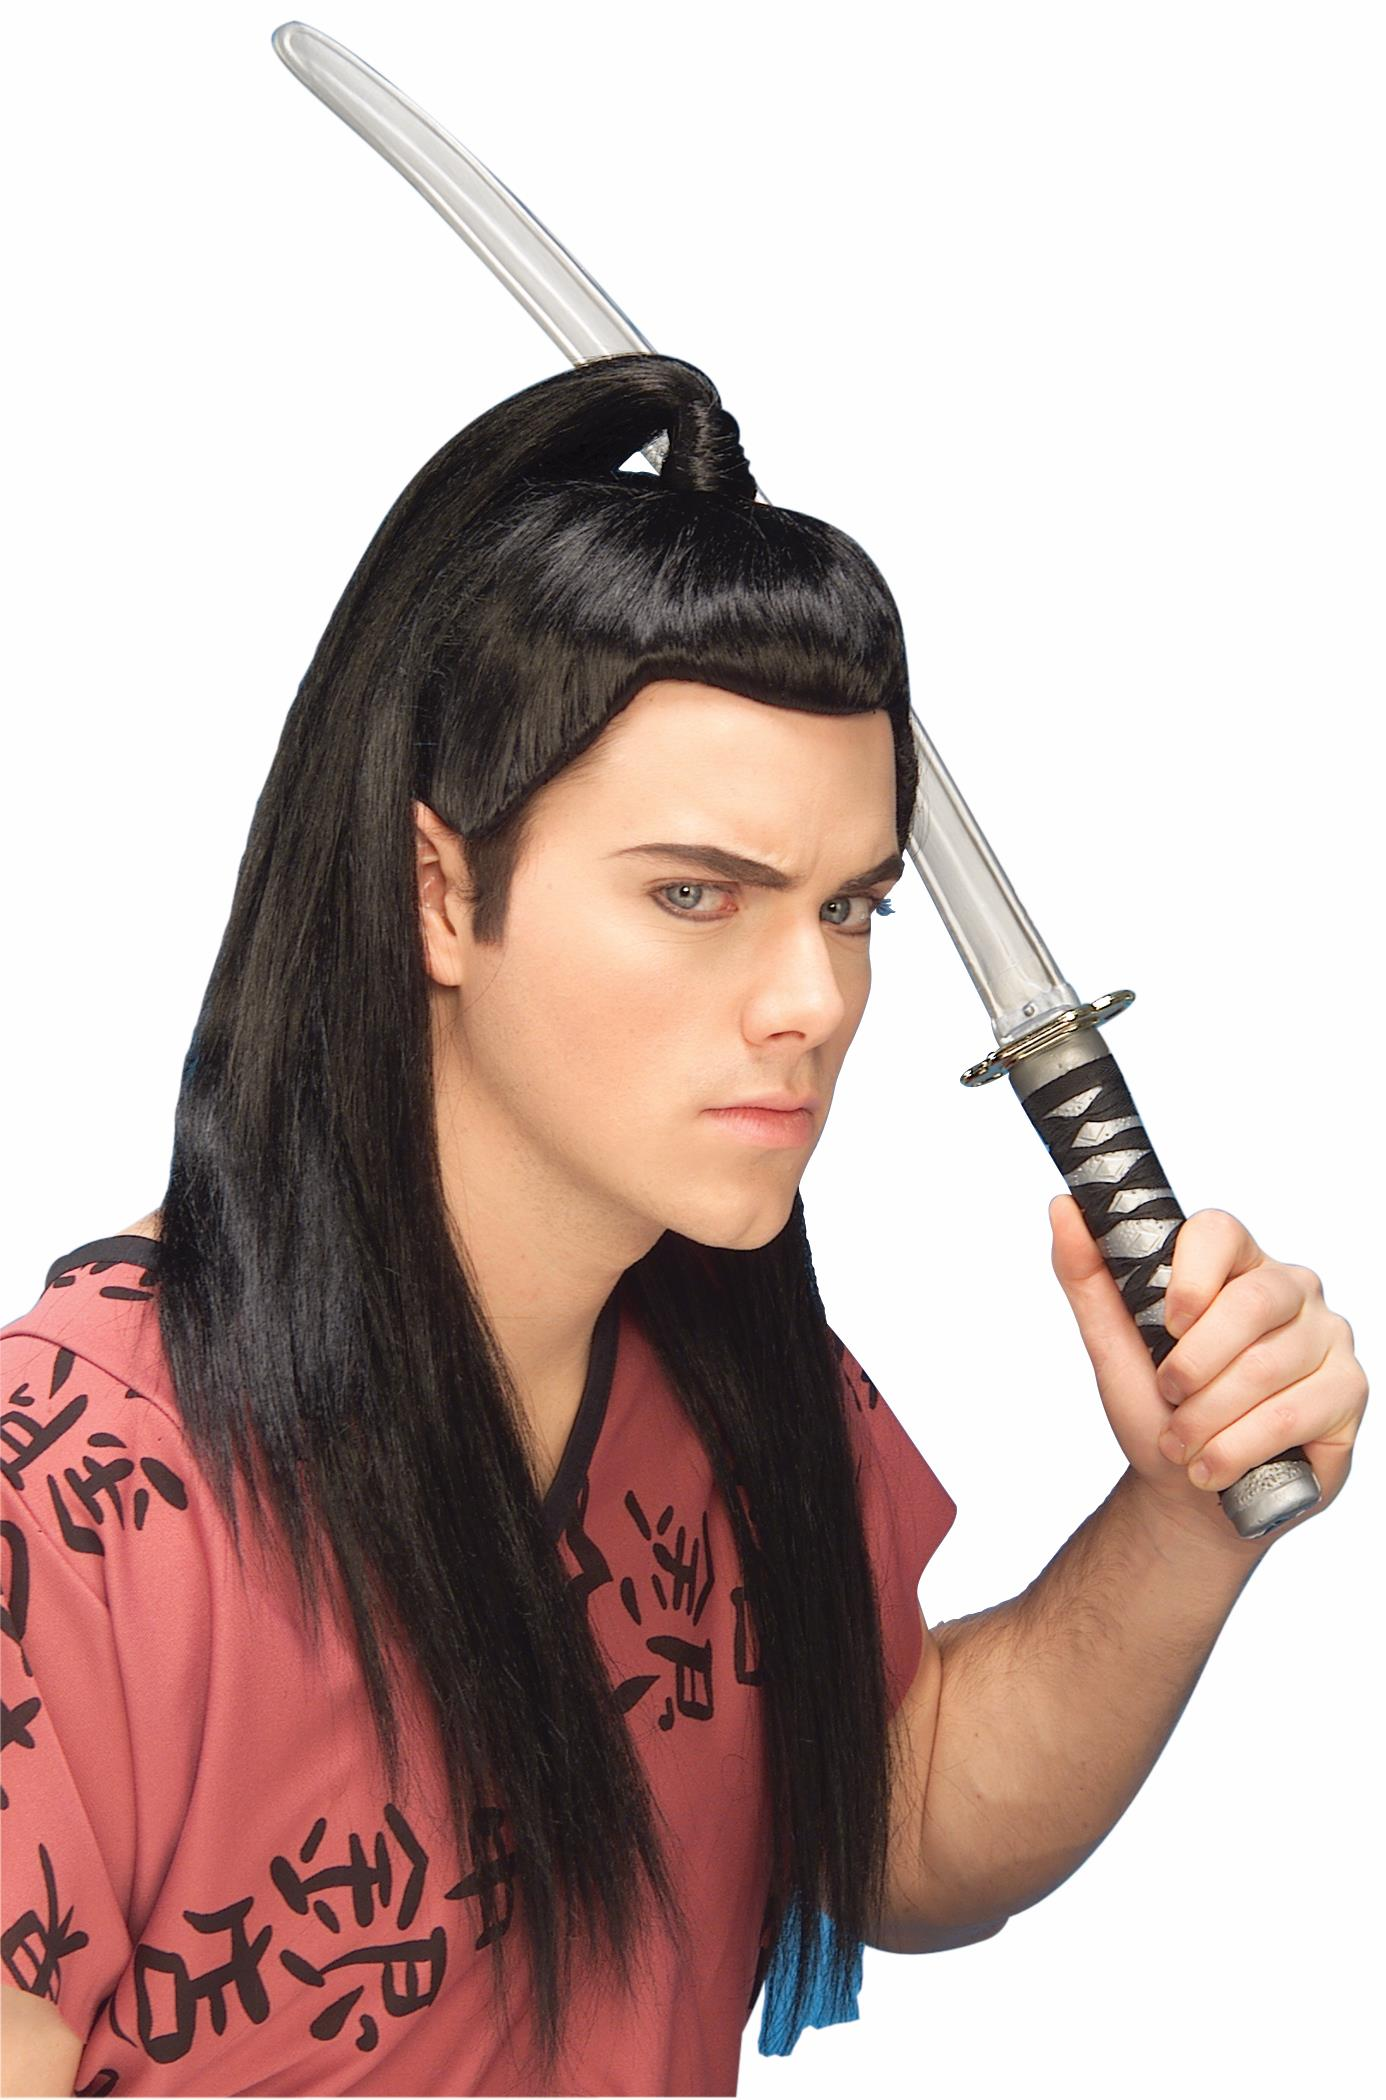 Details About Asian Warrior Costume Accessory Long Black Hair Wig Samurai Ninja Master